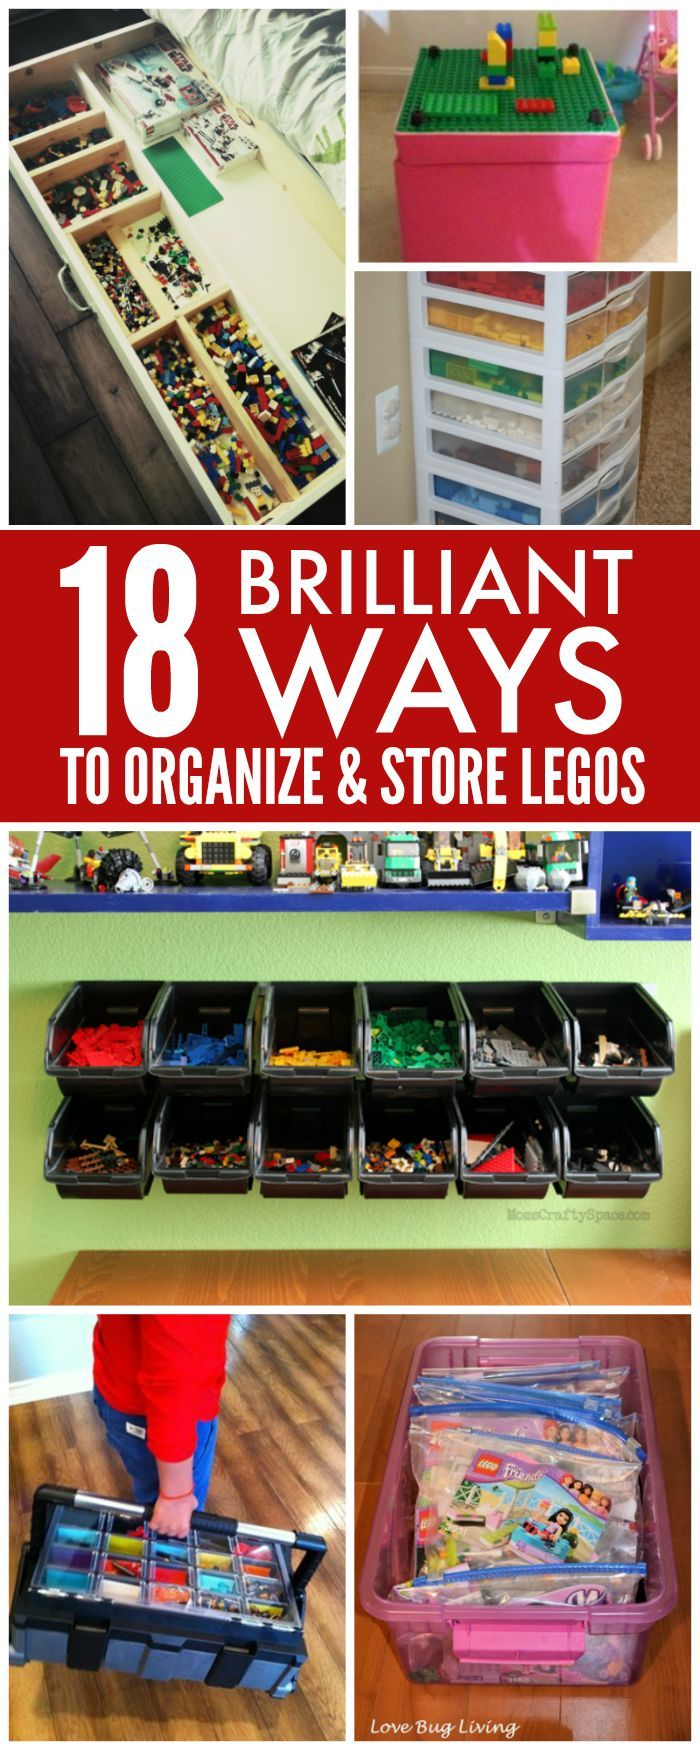 Have you ever stepped on an out of place Lego? It's PAINFUL! Keep that from happening (hopefully) with these 18 Brilliant Ways to Organize & Store LEGOs! Also, your kids won't be asking where to find certain Lego pieces!